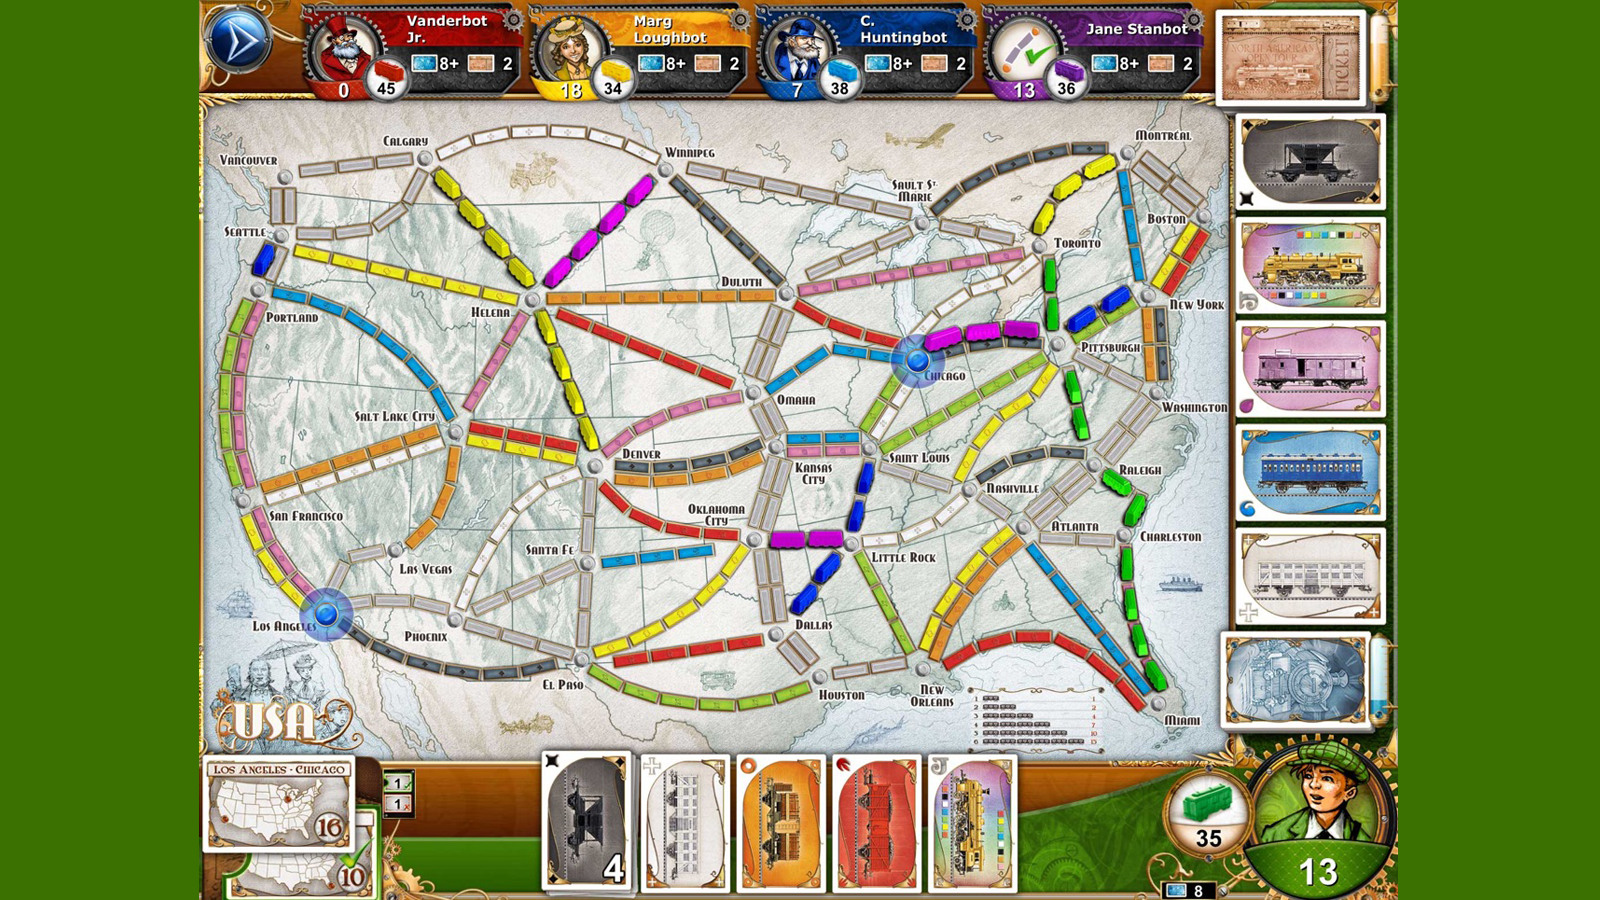 Ticket to Ride game with competing railways on the map